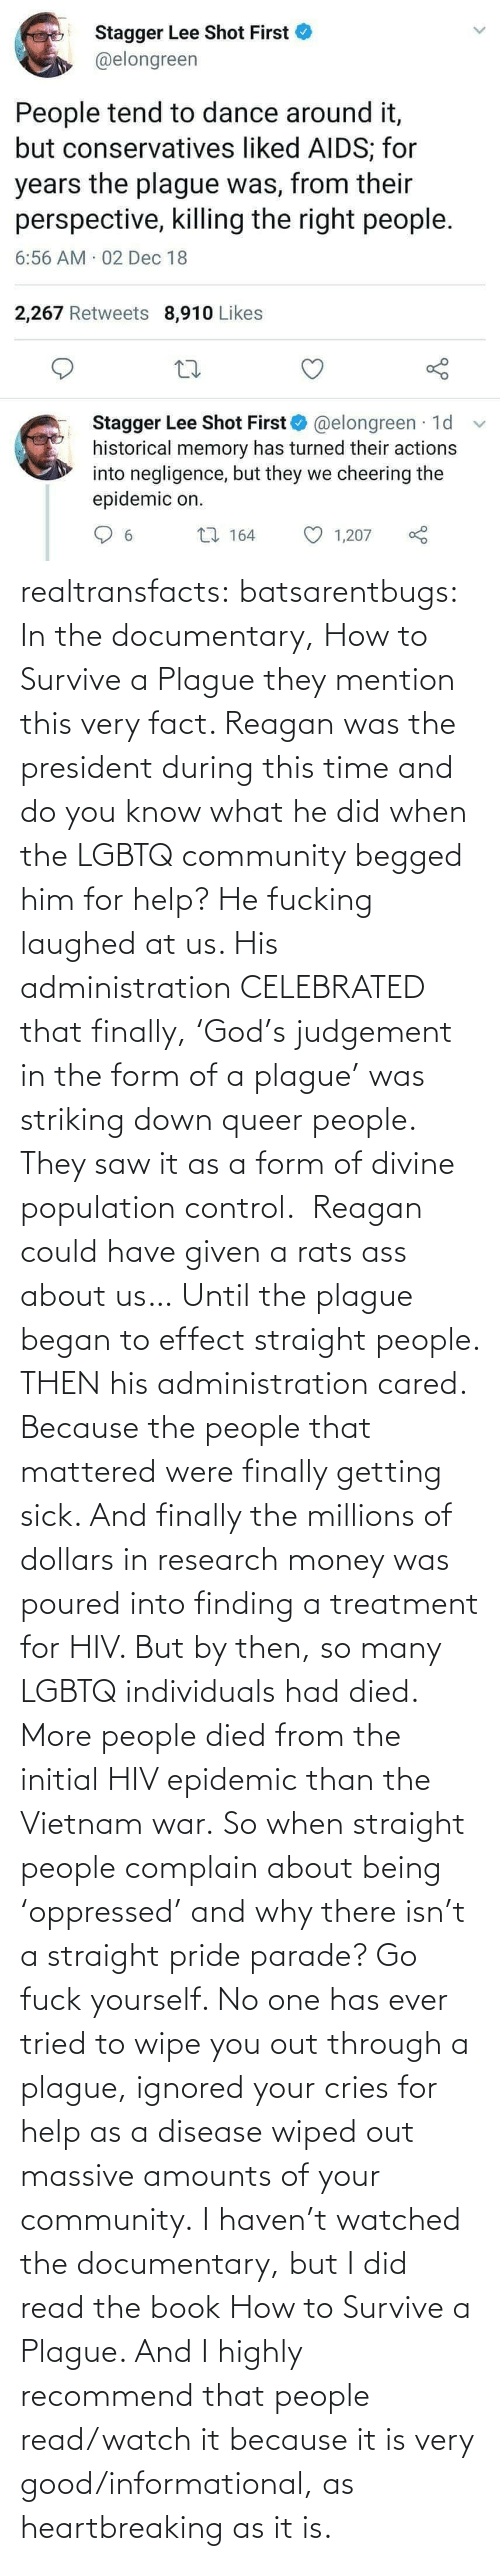 Research: Stagger Lee Shot First  @elongreen  People tend to dance around it,  but conservatives liked AIDS; for  years the plague was, from their  perspective, killing the right people.  6:56 AM 02 Dec 18  2,267 Retweets 8,910 Likes  Stagger Lee Shot First O @elongreen · 1d  historical memory has turned their actions  into negligence, but they we cheering the  epidemic on.  27 164  1,207  6. realtransfacts:  batsarentbugs:  In the documentary, How to Survive a Plague they mention this very fact. Reagan was the president during this time and do you know what he did when the LGBTQ community begged him for help? He fucking laughed at us. His administration CELEBRATED that finally, 'God's judgement in the form of a plague' was striking down queer people.  They saw it as a form of divine population control.  Reagan could have given a rats ass about us… Until the plague began to effect straight people. THEN his administration cared. Because the people that mattered were finally getting sick. And finally the millions of dollars in research money was poured into finding a treatment for HIV. But by then, so many LGBTQ individuals had died.  More people died from the initial HIV epidemic than the Vietnam war. So when straight people complain about being 'oppressed' and why there isn't a straight pride parade? Go fuck yourself. No one has ever tried to wipe you out through a plague, ignored your cries for help as a disease wiped out massive amounts of your community.  I haven't watched the documentary, but I did read the book  How to Survive a Plague. And I highly recommend that people read/watch it because it is very good/informational, as heartbreaking as it is.